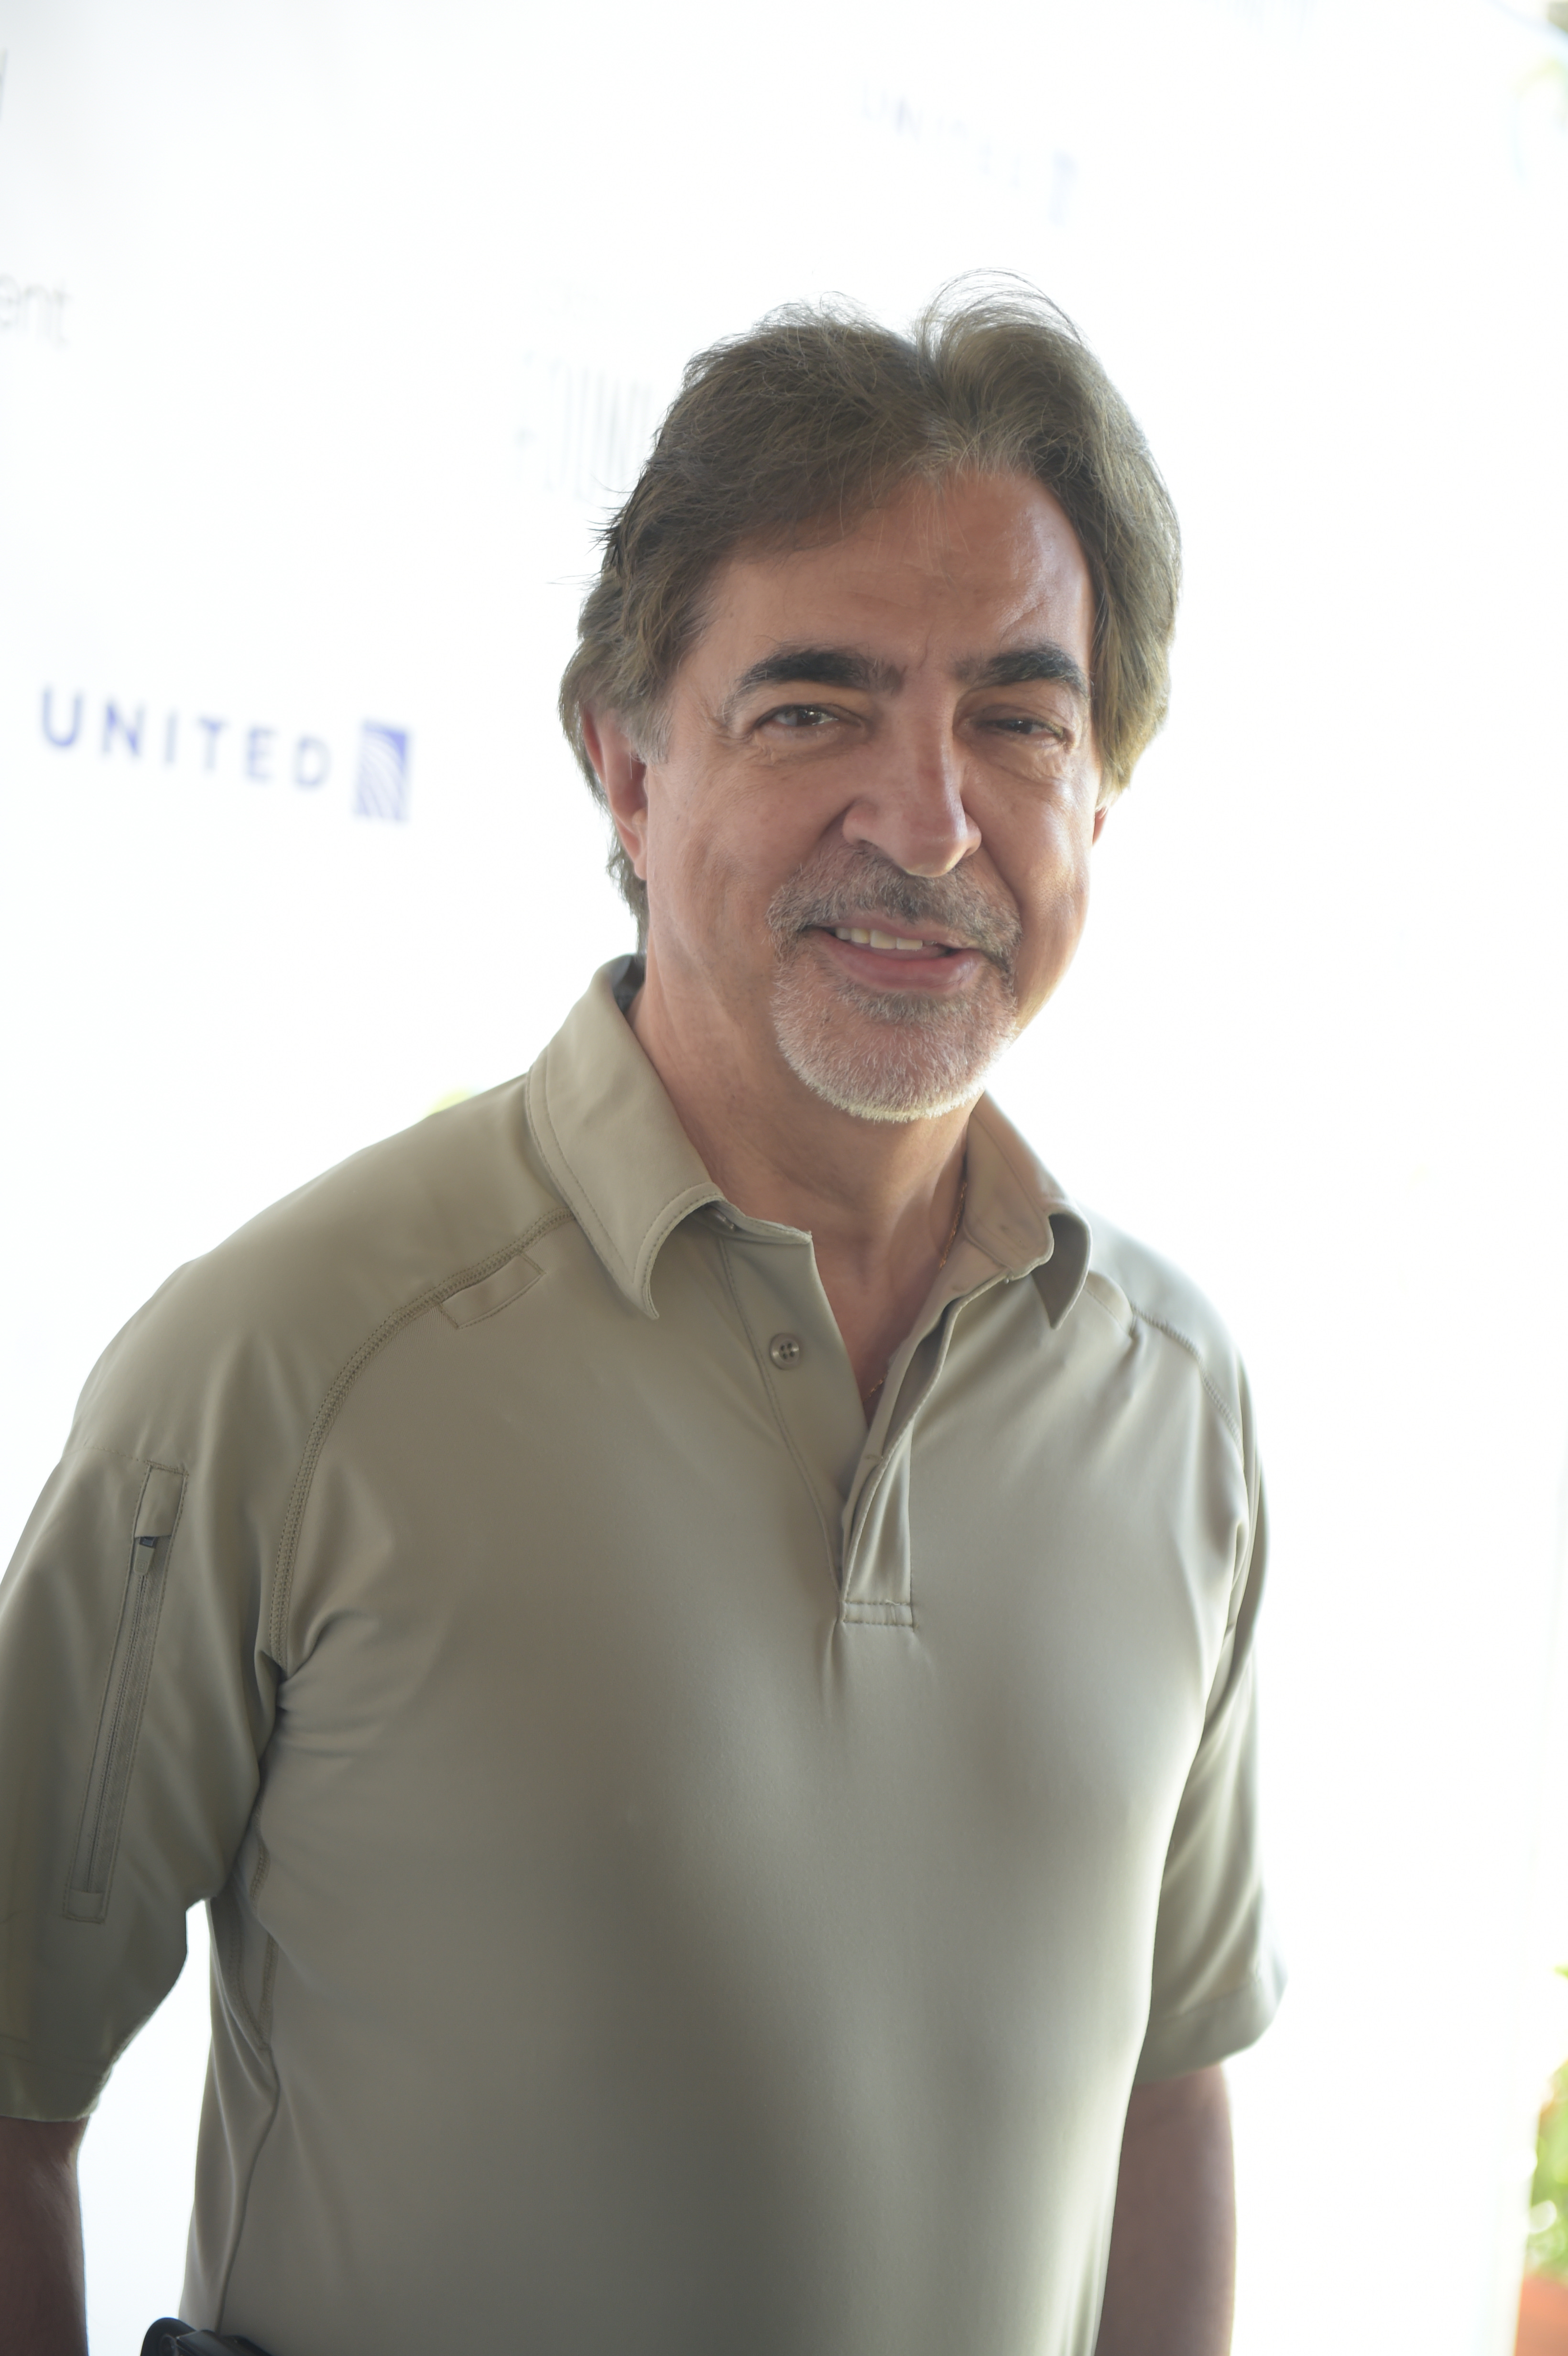 Joe Mantegna attends The Screen Actors Guild Foundation's 6th Annual Los Angeles Golf Classic on June 8, 2015 in Burbank, California. (Photo by Jason Kempin/Getty Images for The Screen Actors Guild Foundation)